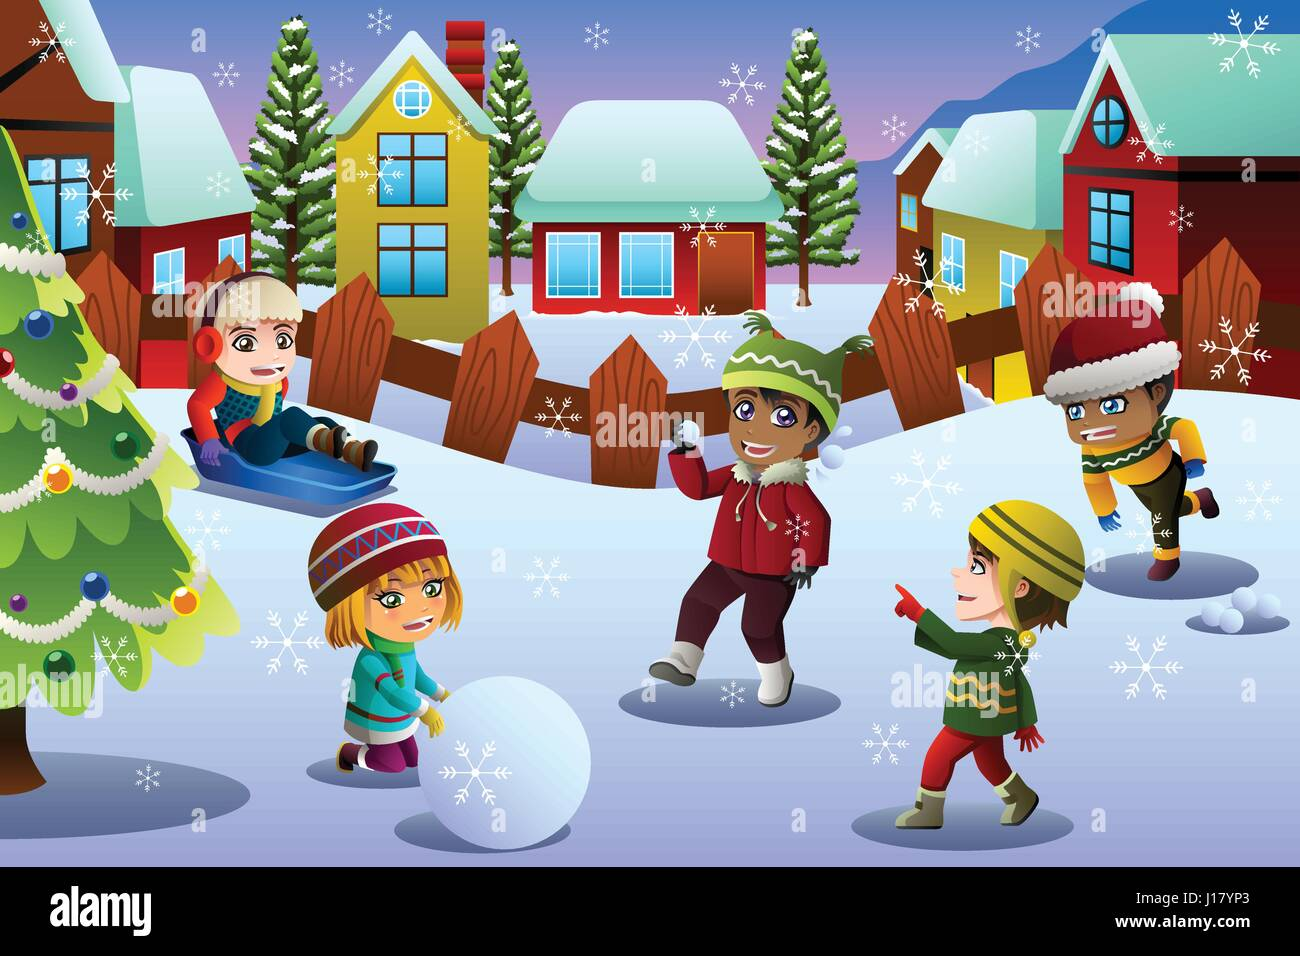 A vector illustration of Kids Playing in the Snow During Winter Season - Stock Image